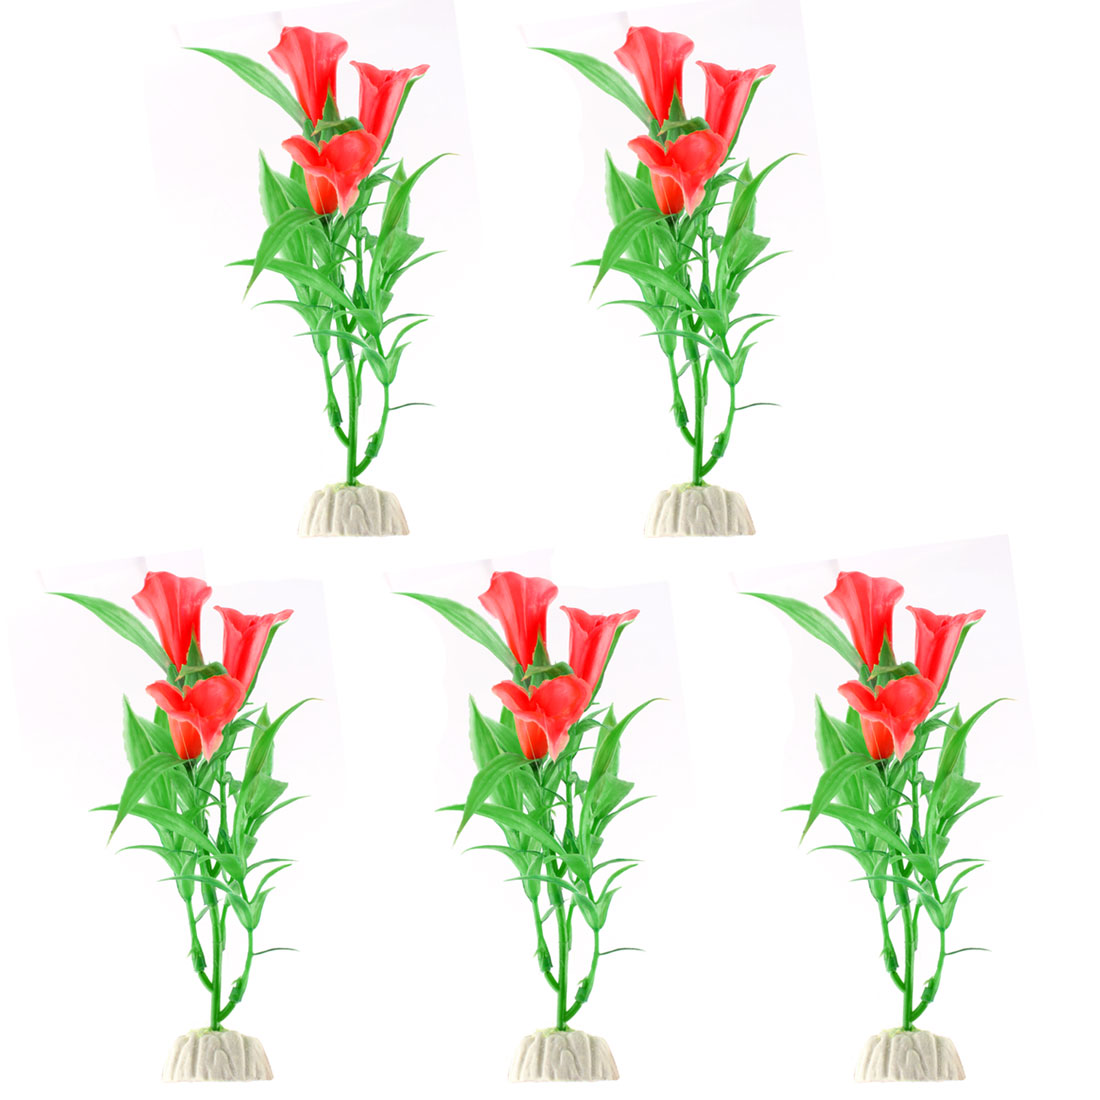 Red Flowers Green Leaves Plastic Calla Lily for Aquarium Decor 5 Pcs